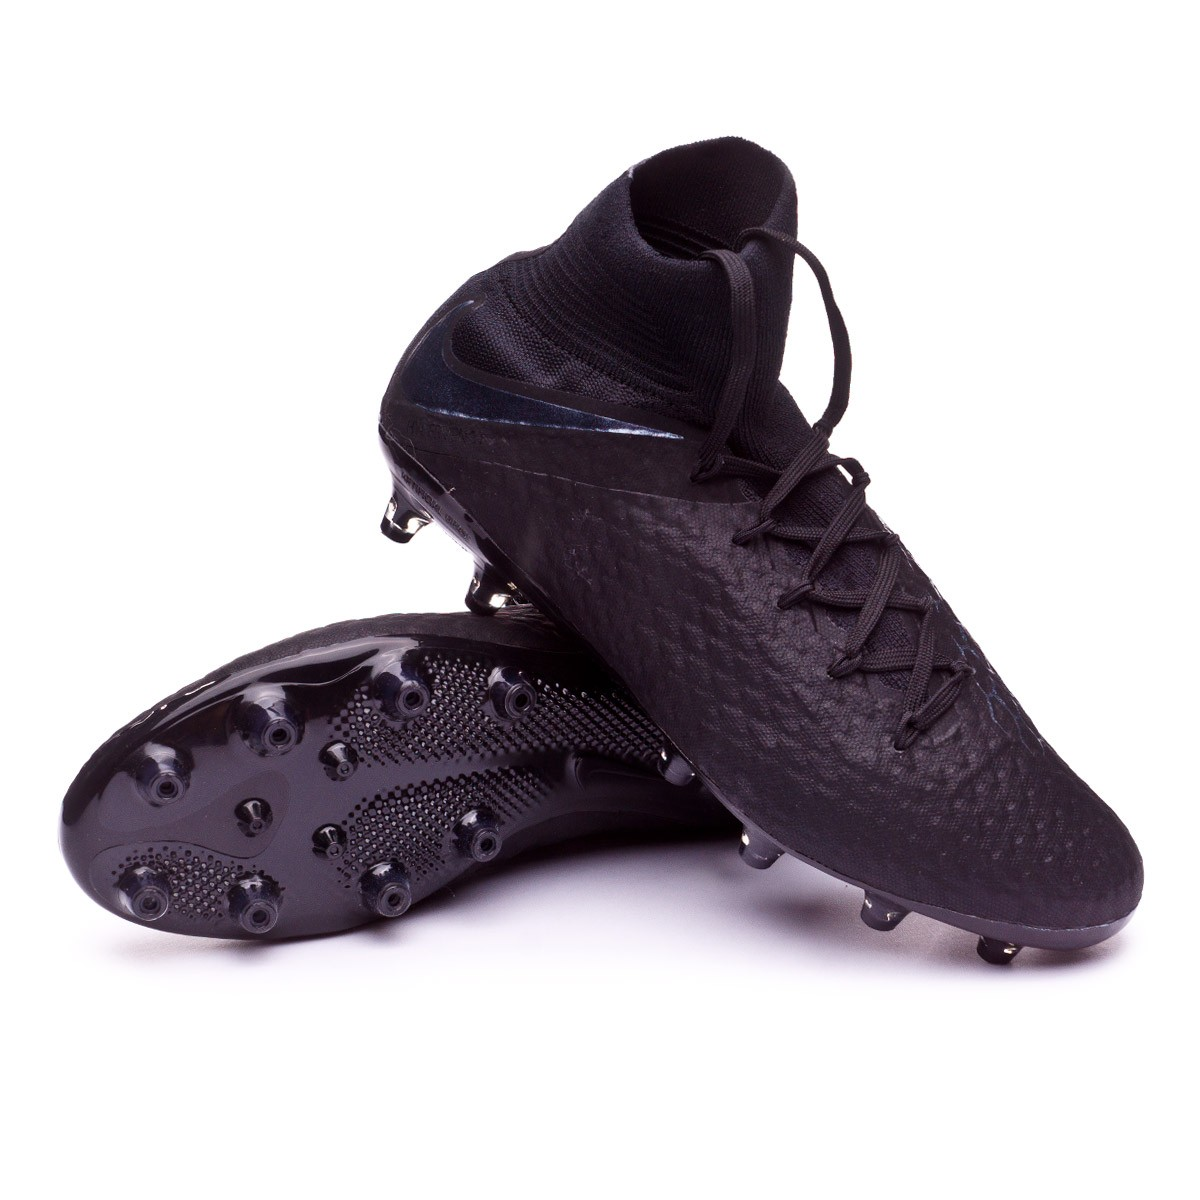 fashion styles limited guantity on feet images of Bota Hypervenom Phantom III Pro DF AG-Pro Black